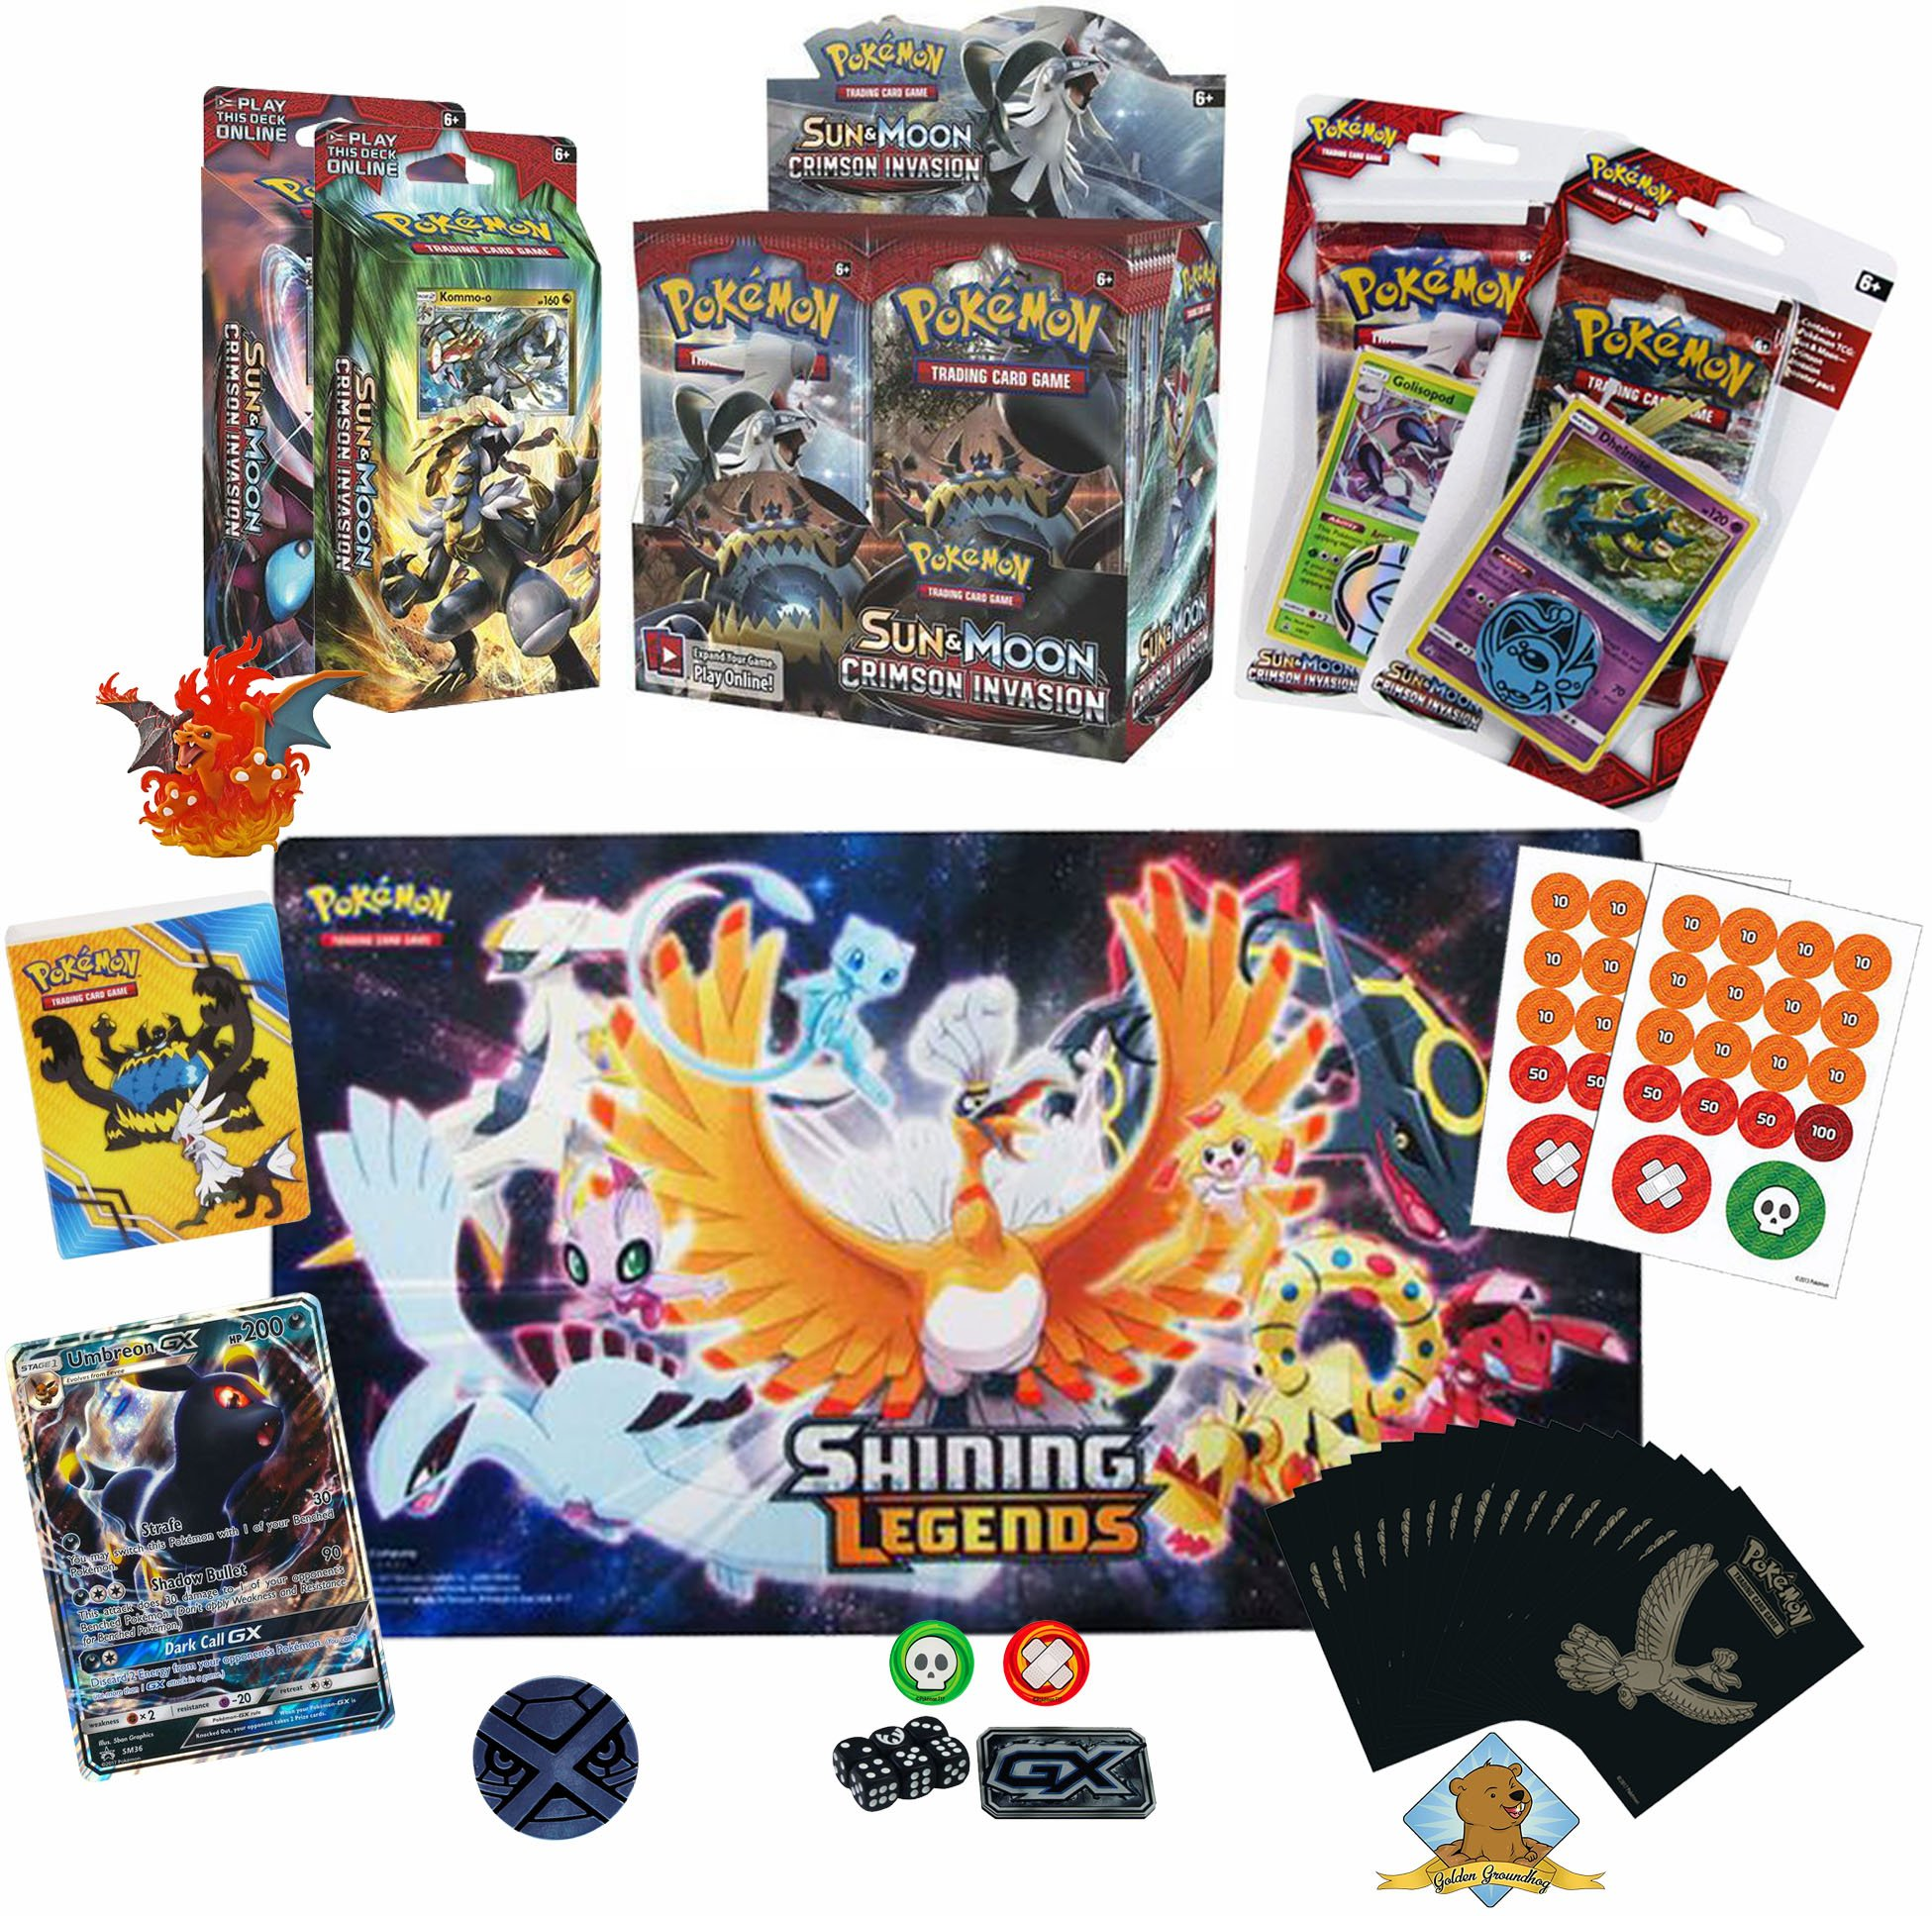 Pokemon Sealed Starter Lot - Pokemon Cards - Crimson Invasion Booster Box - Theme Deck - Pokemon Playmat Sleeves Coin Figure Dice Mini Binder and more! Great Holiday Gift! By Golden Groundhog!